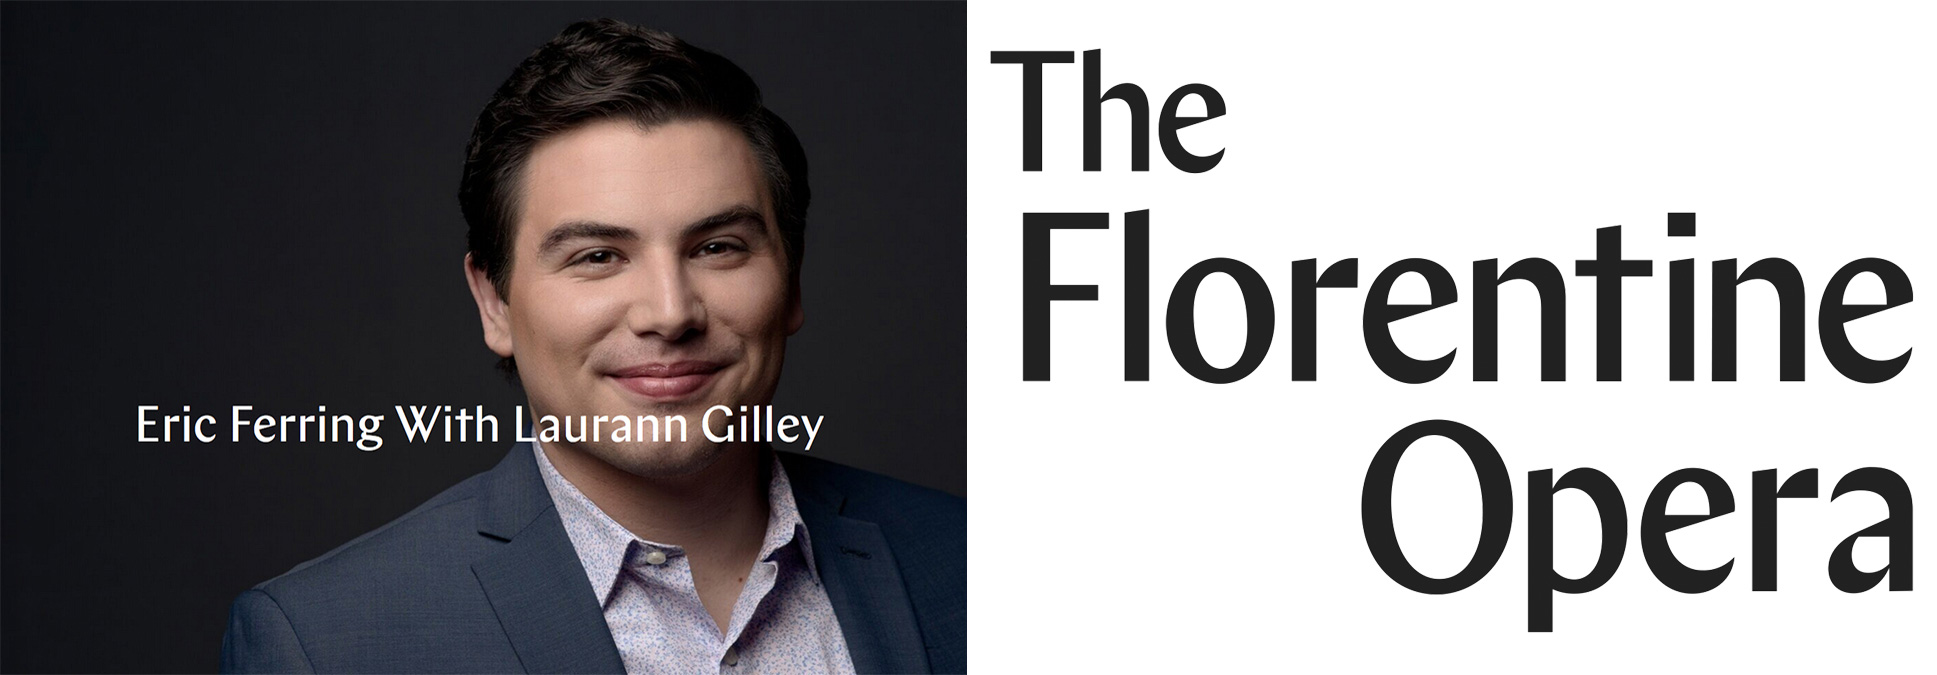 Florentine Opera Spotlight - ERIC FERRING WITH LAURANN GILLEY